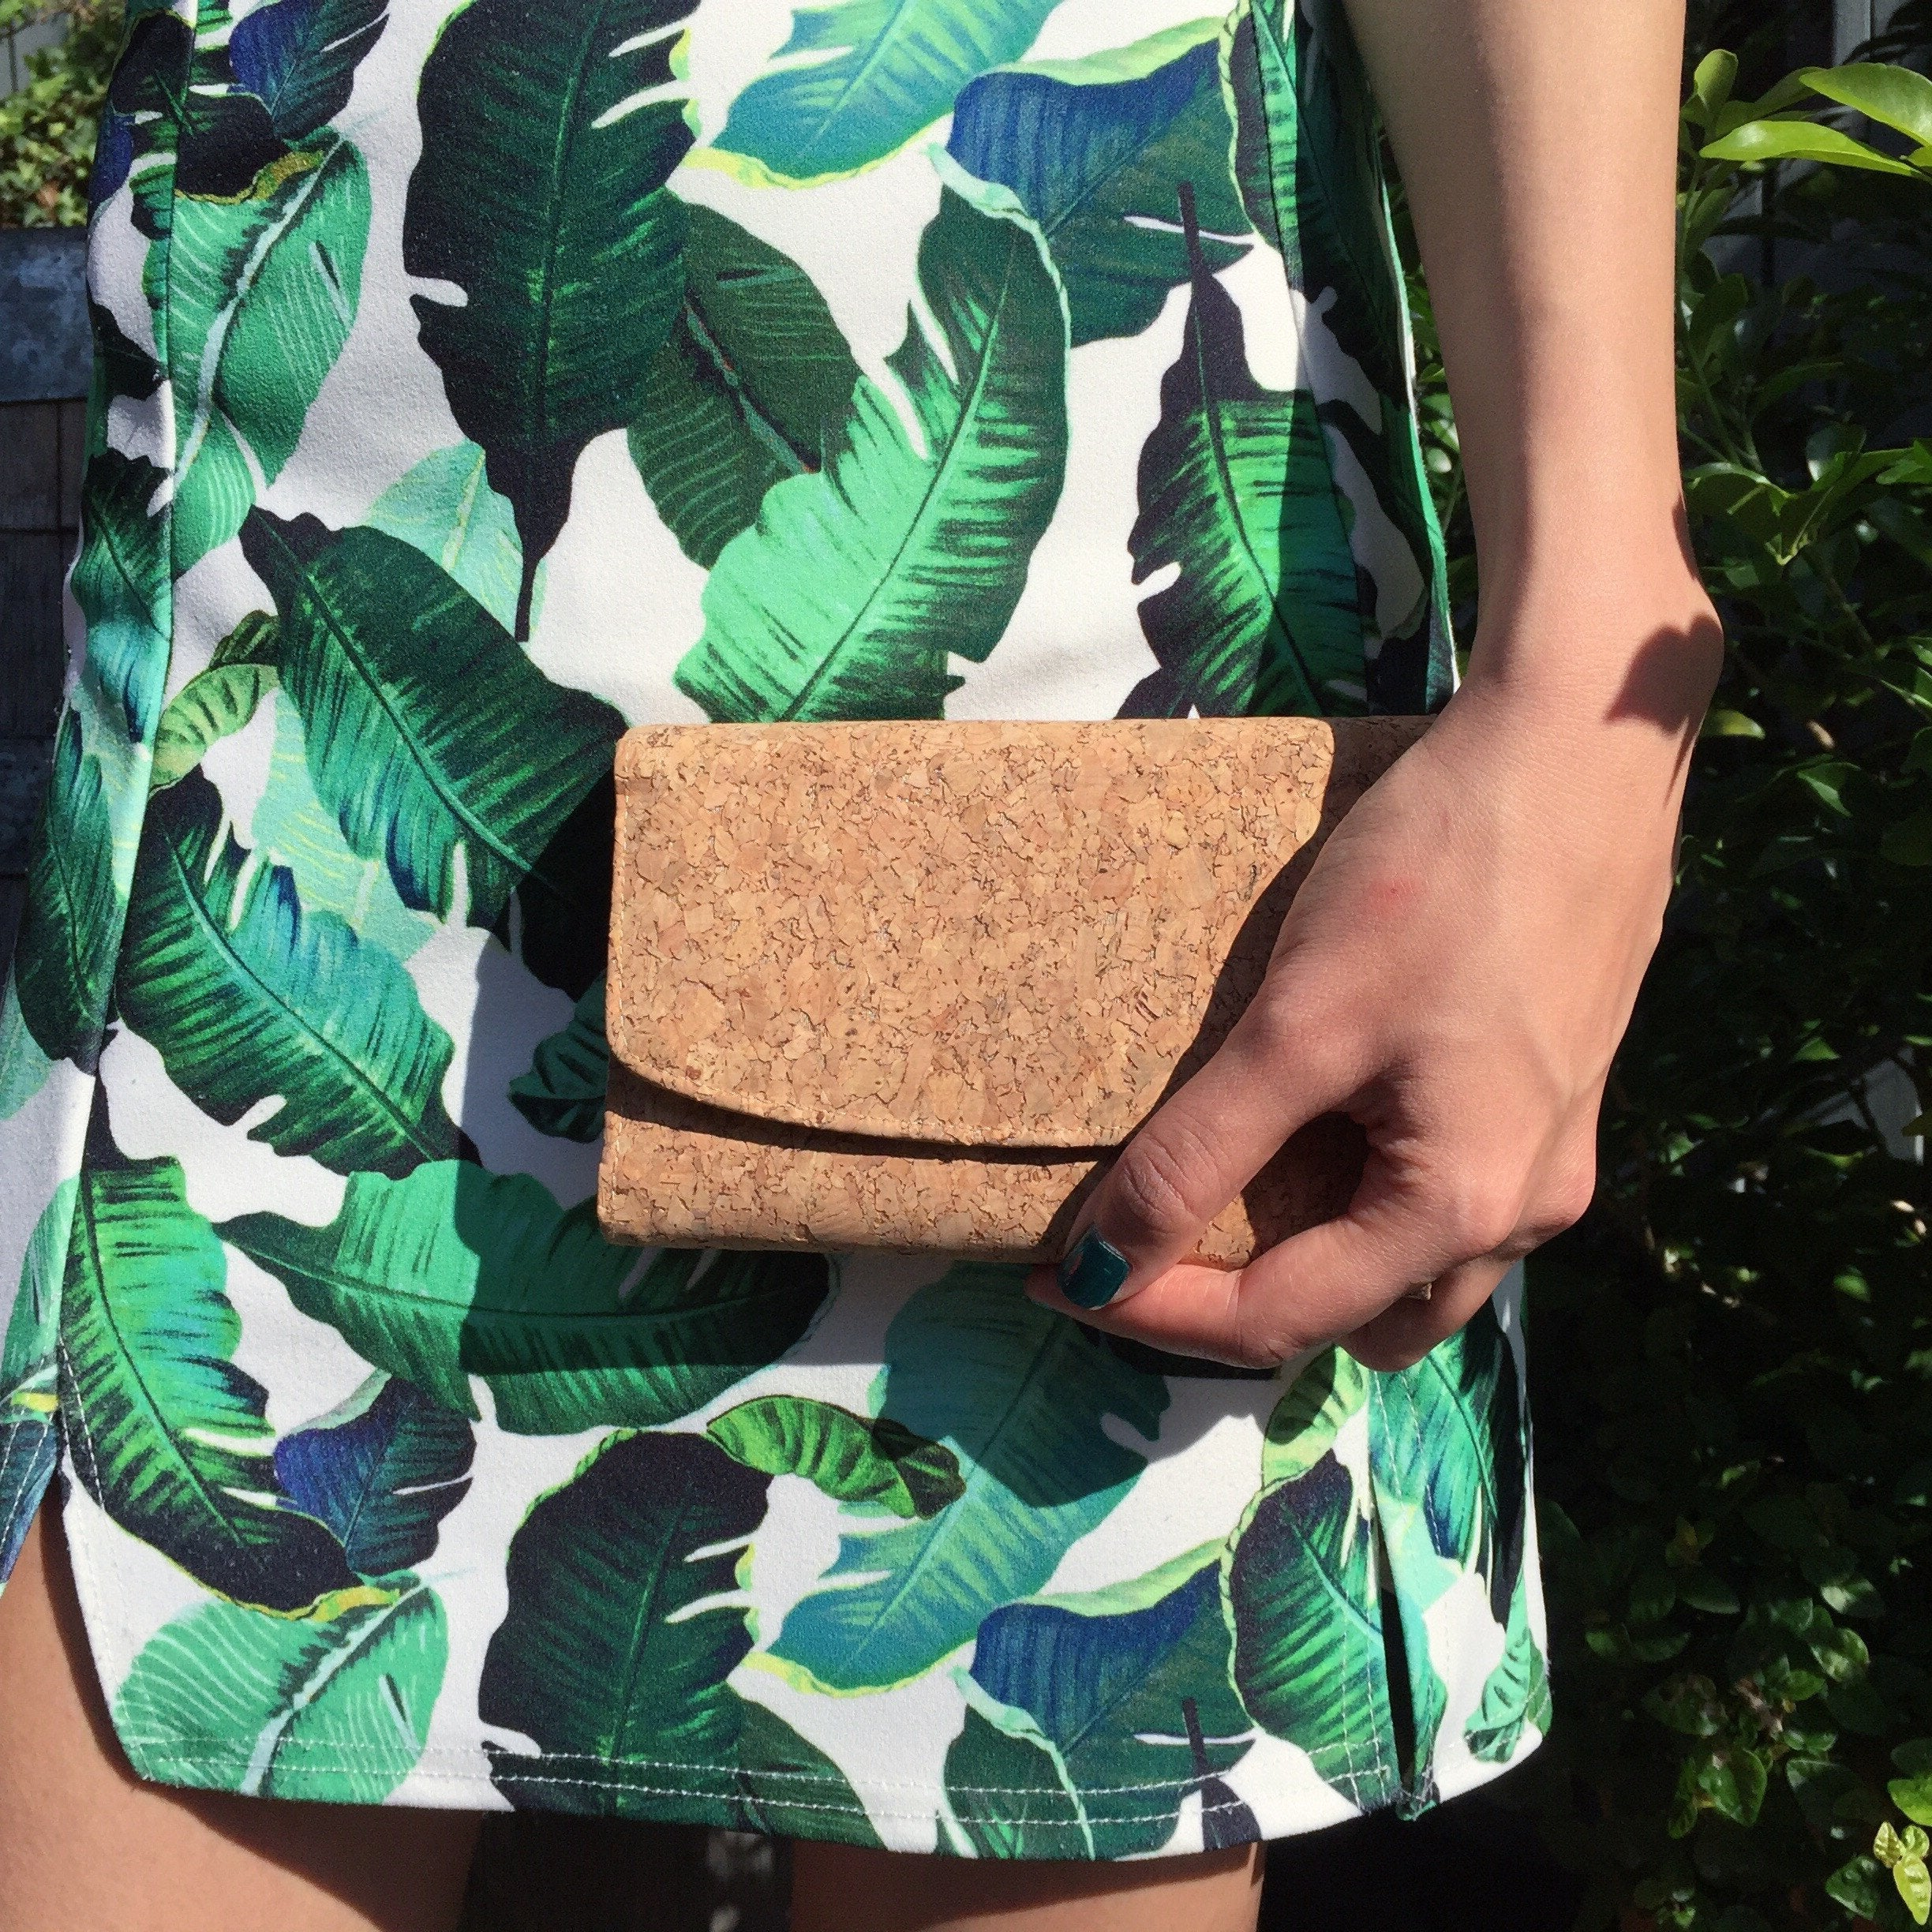 Plain Classic Emily Cork Wallet Purse Natural Cruelty Free Ethical Vegan Recycled